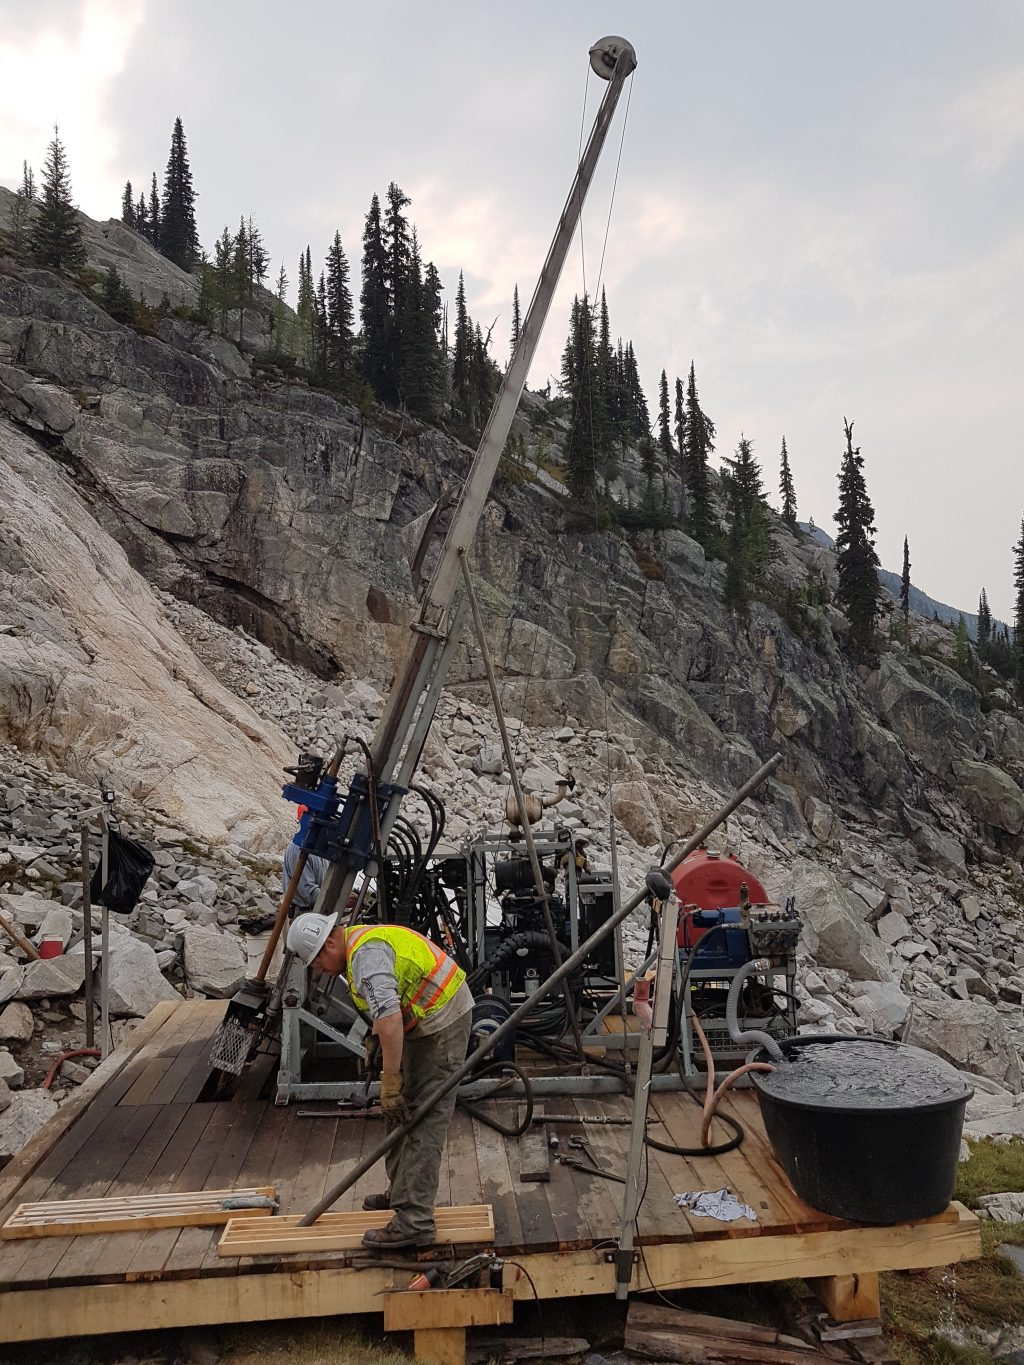 Setting up the drill at Braveheart Resources Inc.'s Alpine Gold Mine project near Nelson, British Columbia. Credit: Braveheart Resources Inc.